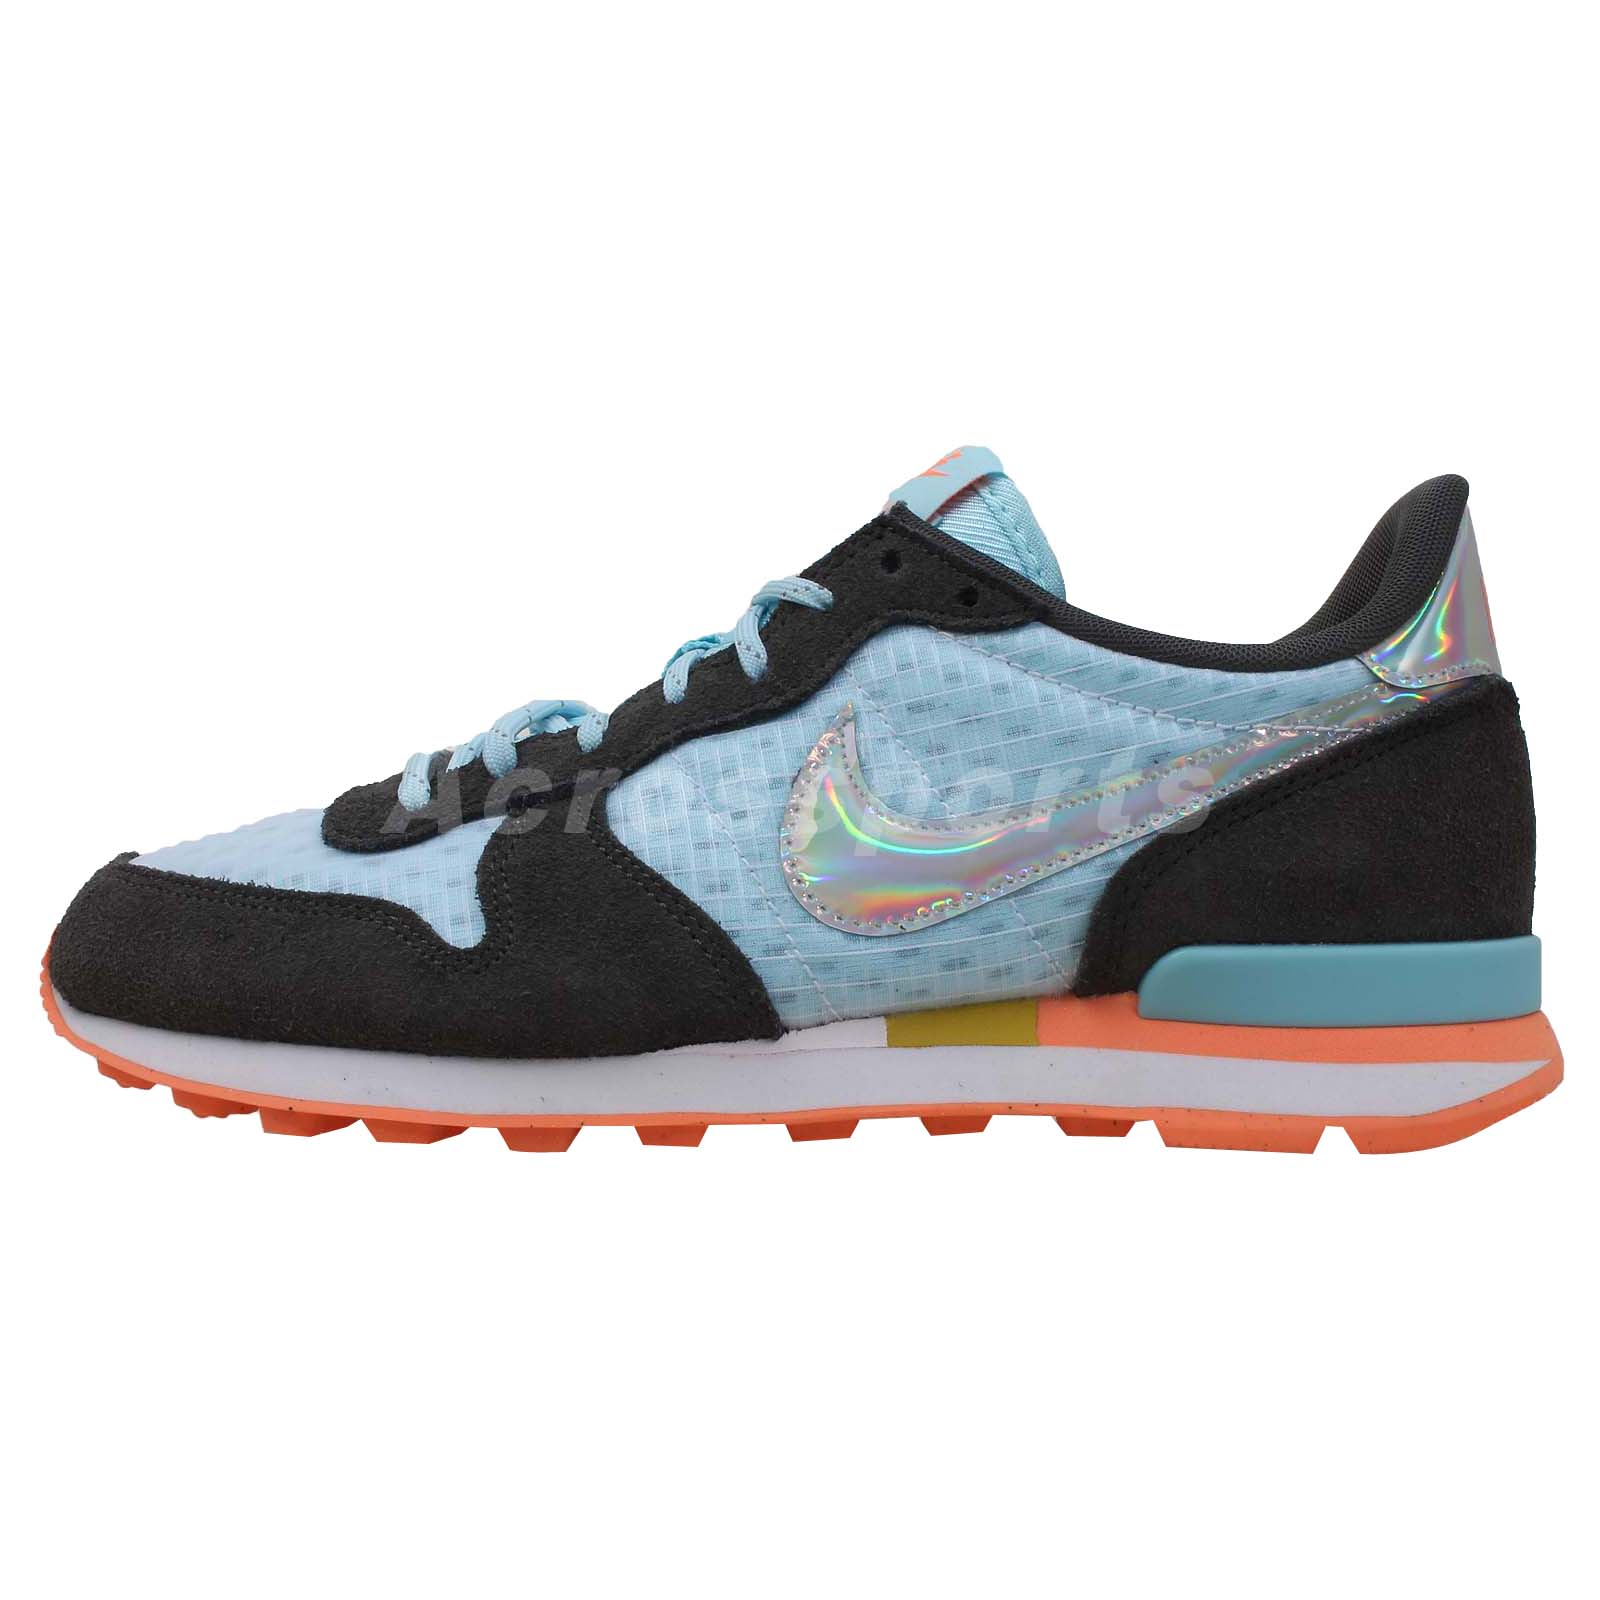 Wonderful About Nike Wmns Oceania Textile 2014 Womens Retro Running Casual Shoes